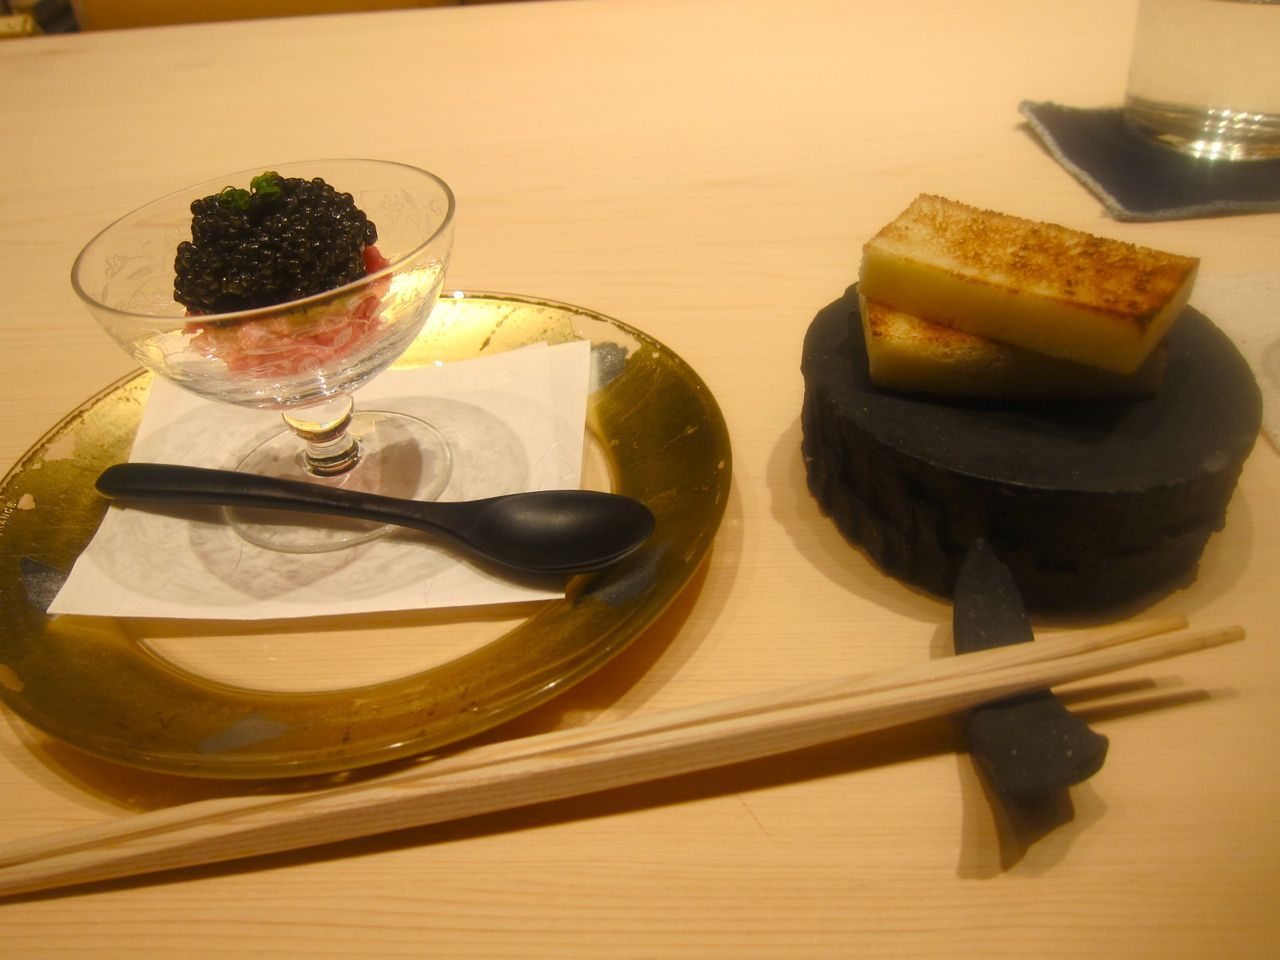 If you have to ask the price, you can't afford this gossamer fatty toro and caviar.